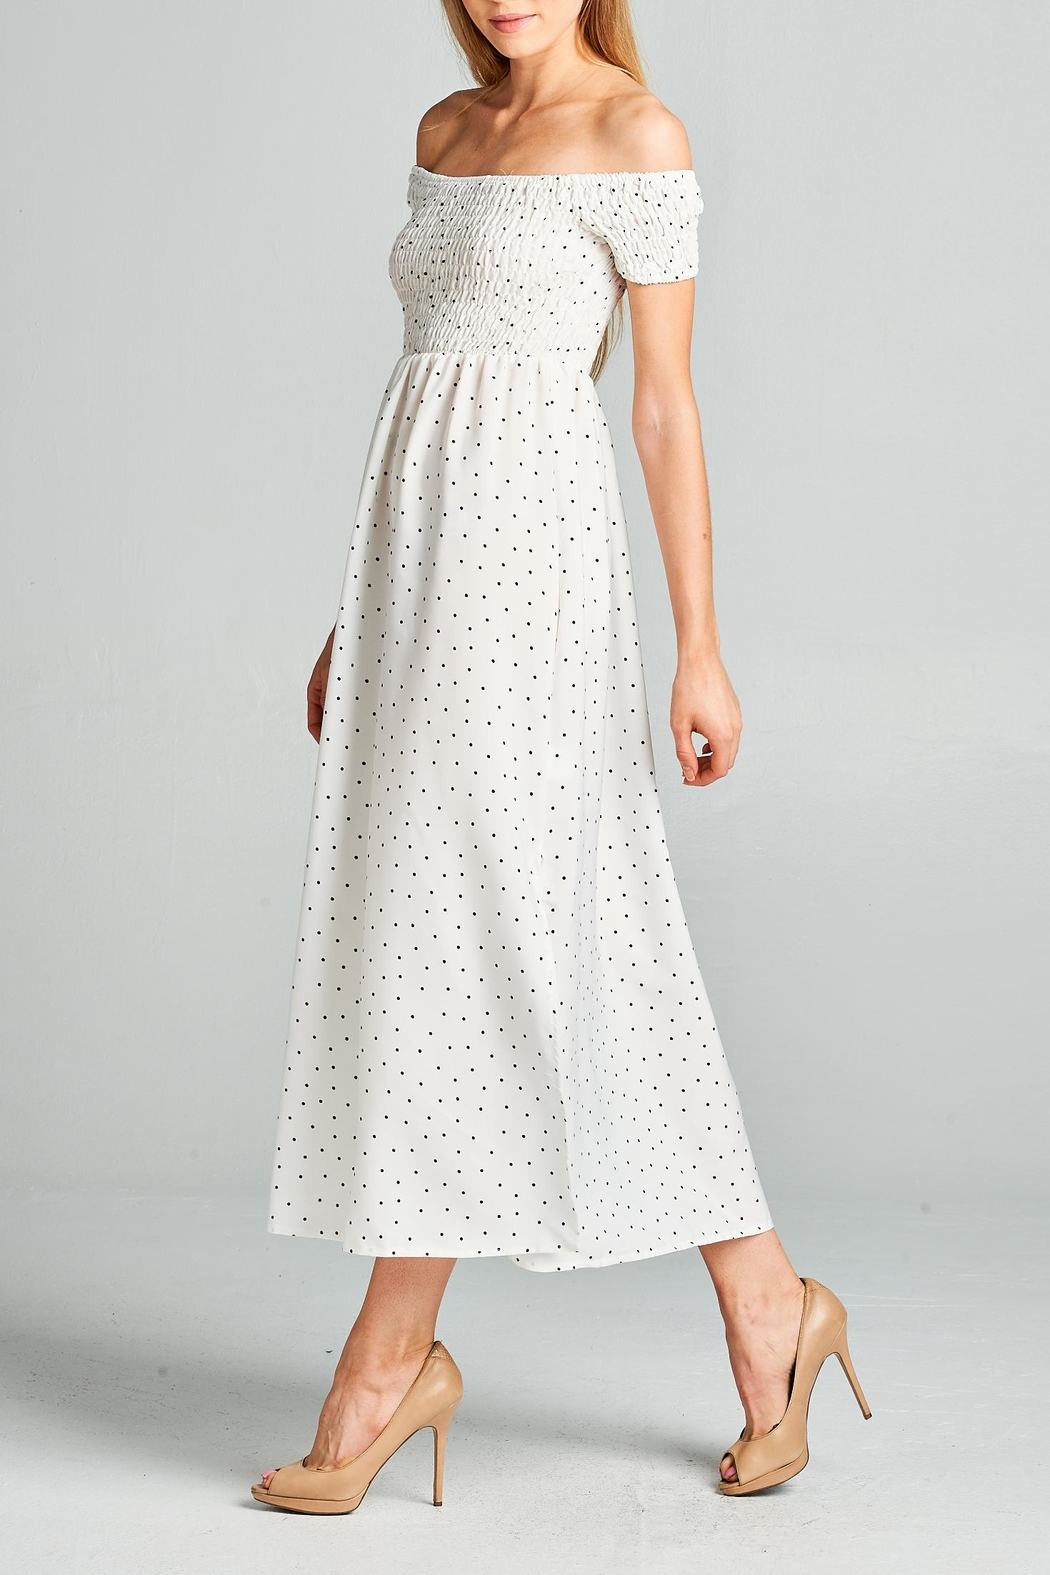 Racine Polka Dot Midi Dress - Front Full Image